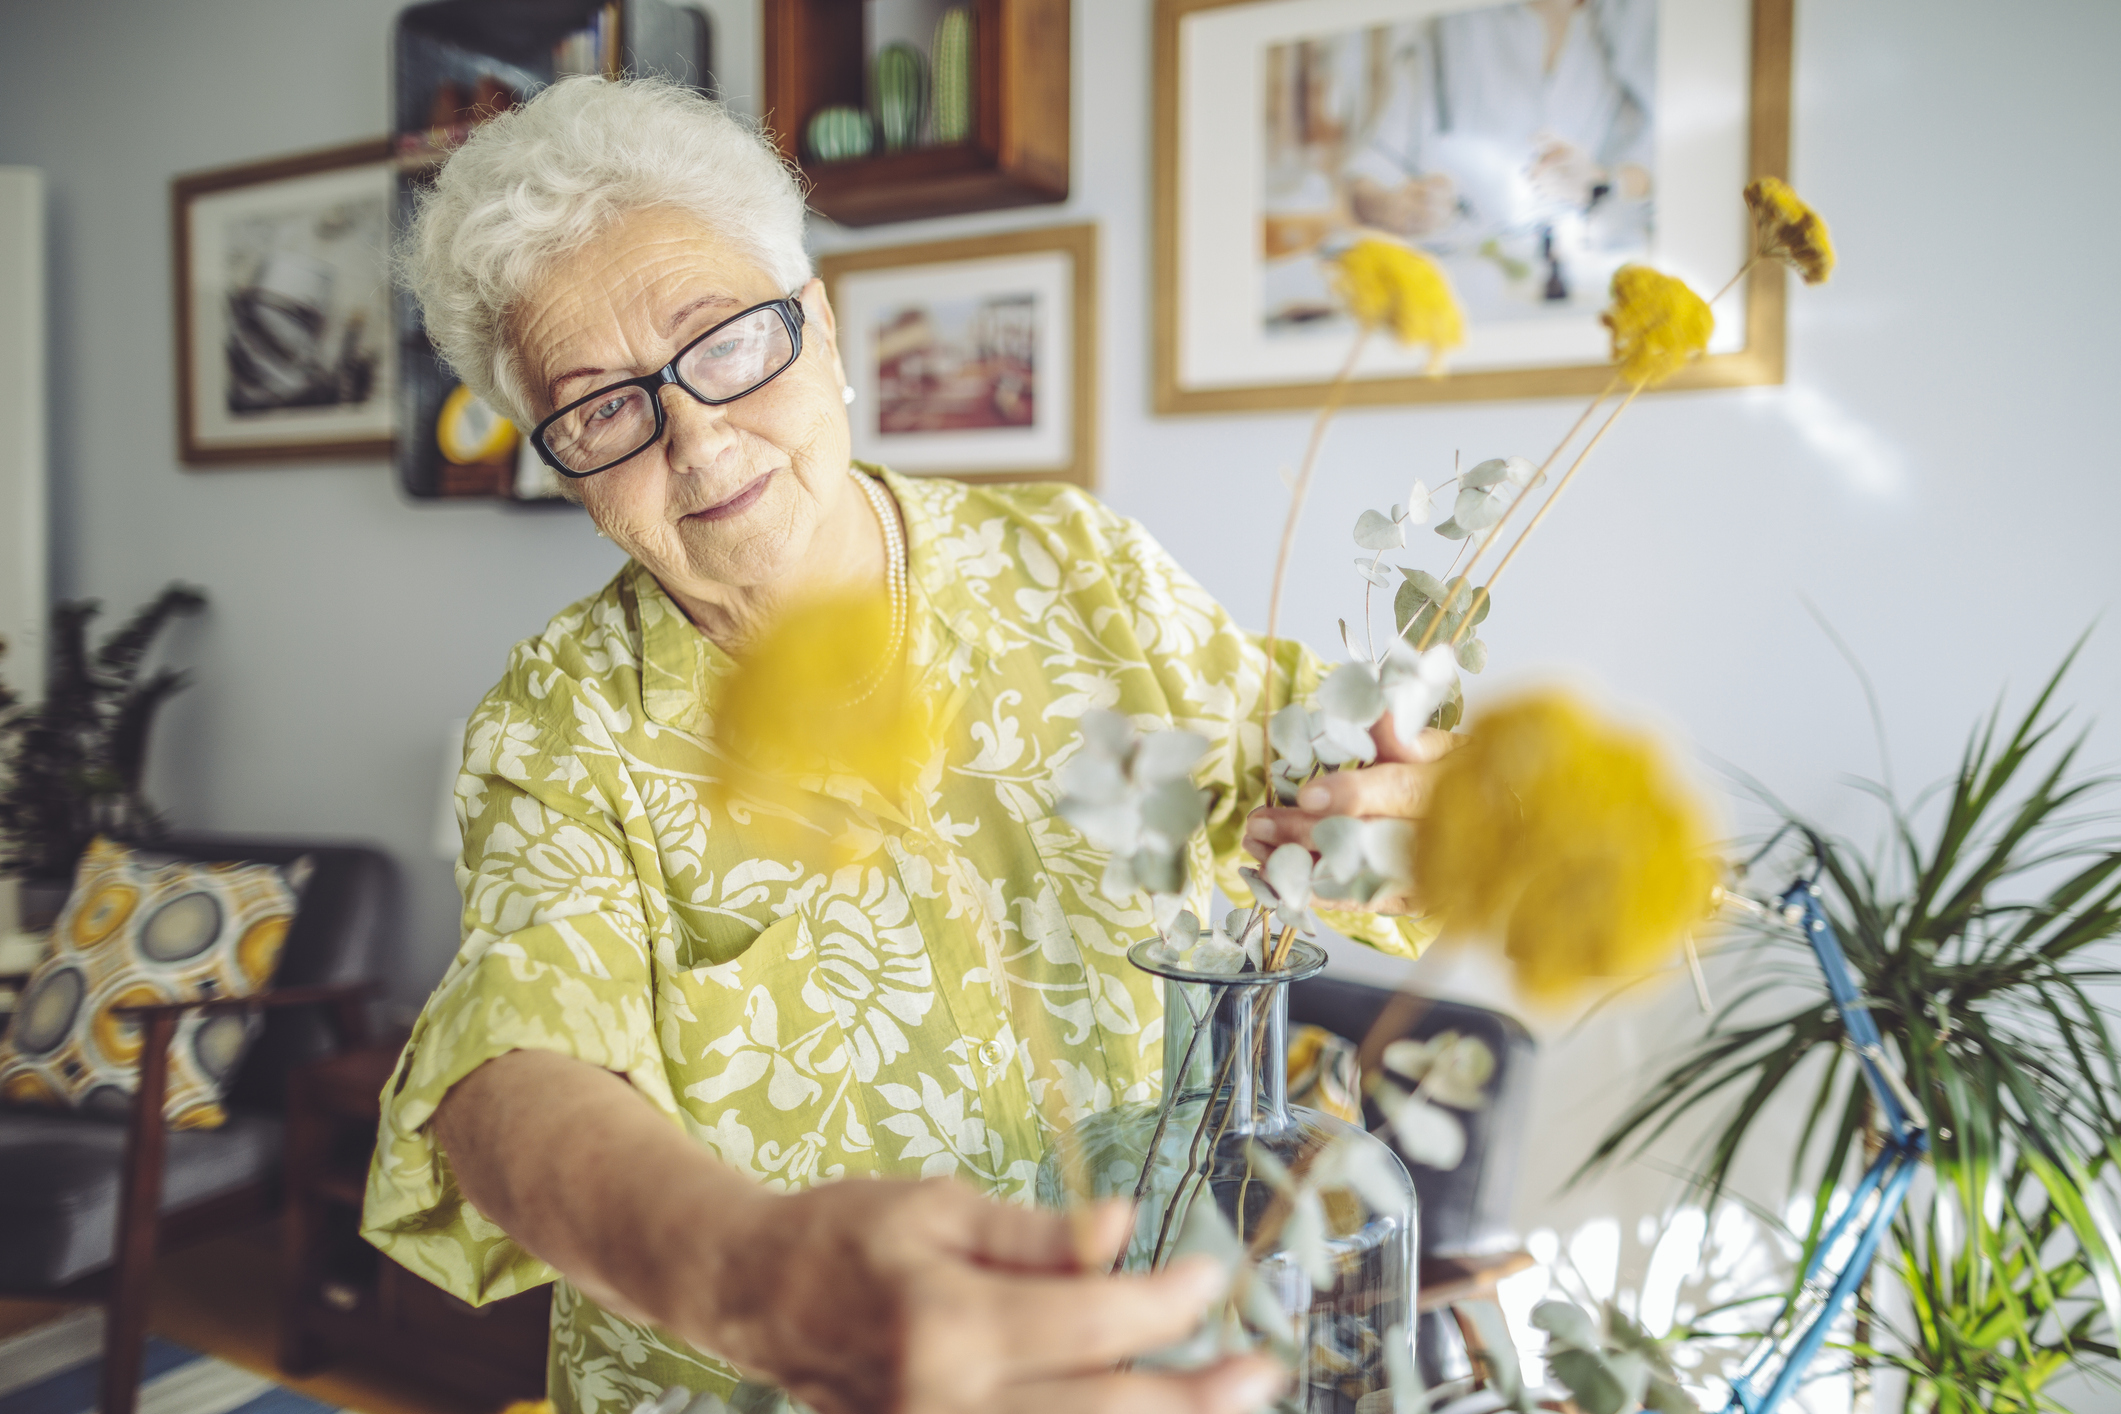 Image of previous post - ASSISTED LIVING VS NURSING HOMES: WHAT'S THE DIFFERENCE?